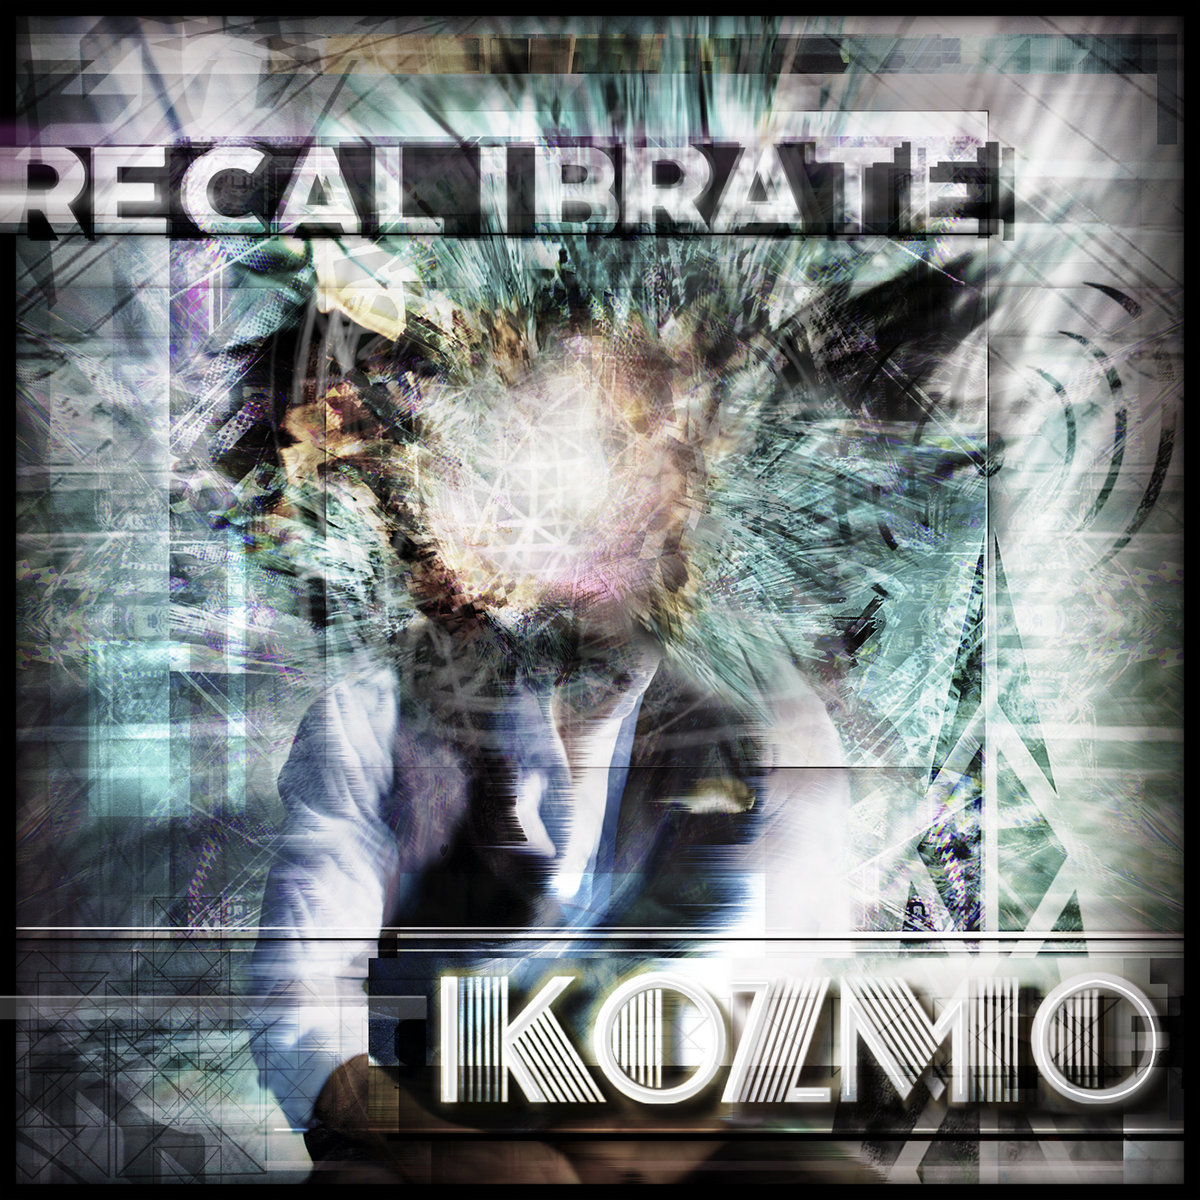 Kozmo feat. Mike.iLL - Don't Make Me Laugh @ 'Recalibrate' album (bass, electronic)